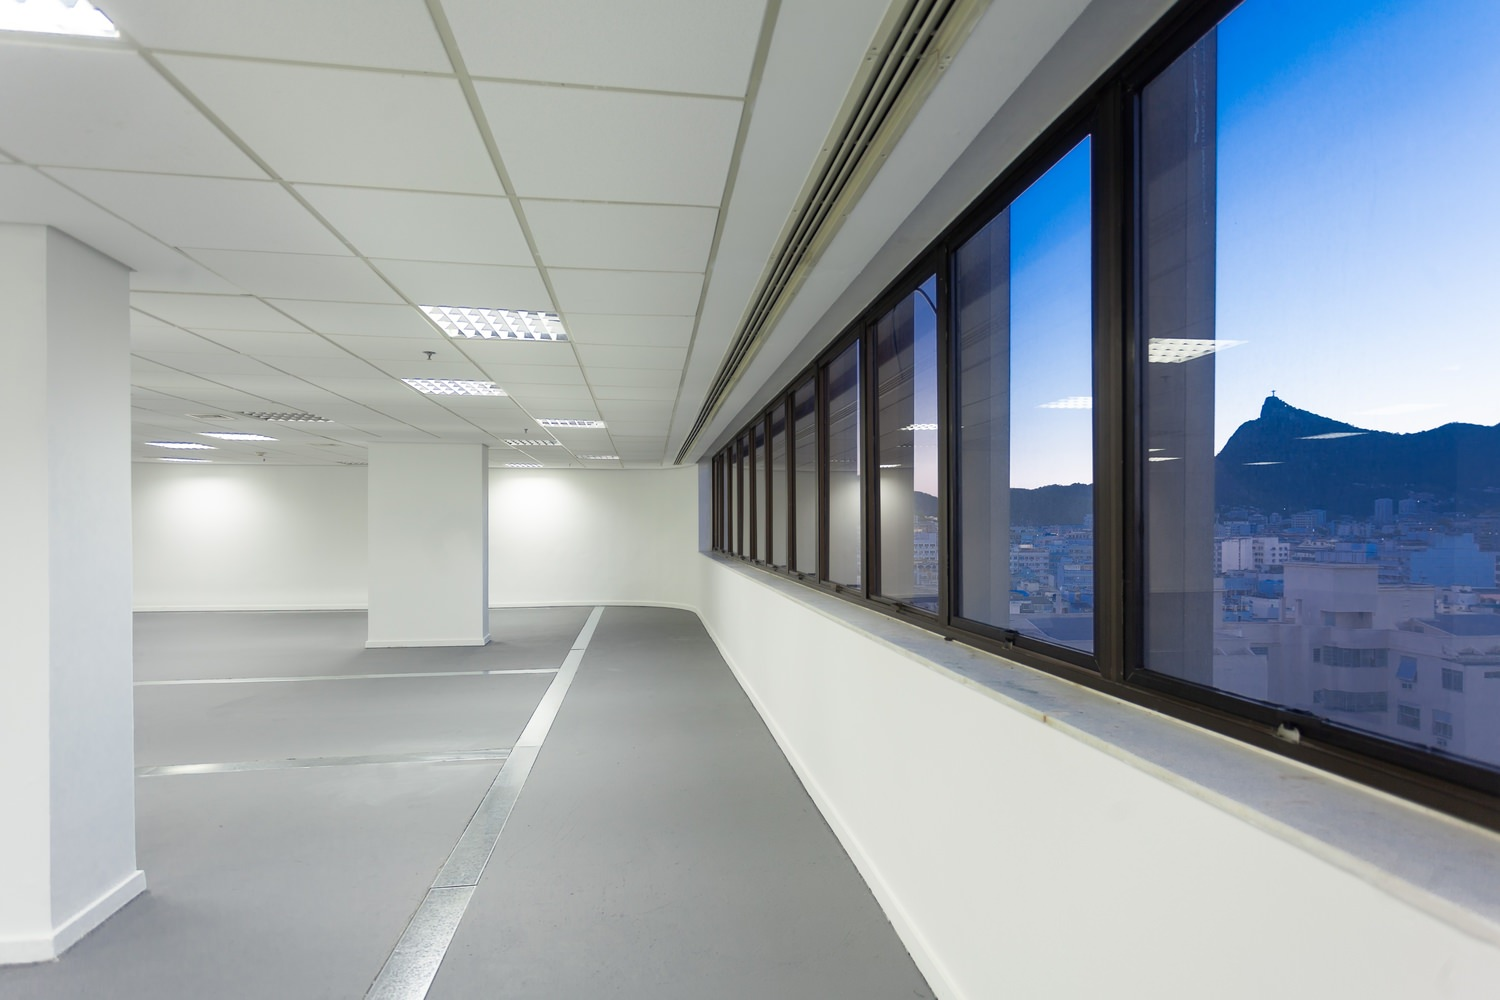 A large white room that has a window that shows a view of the city and mountains.